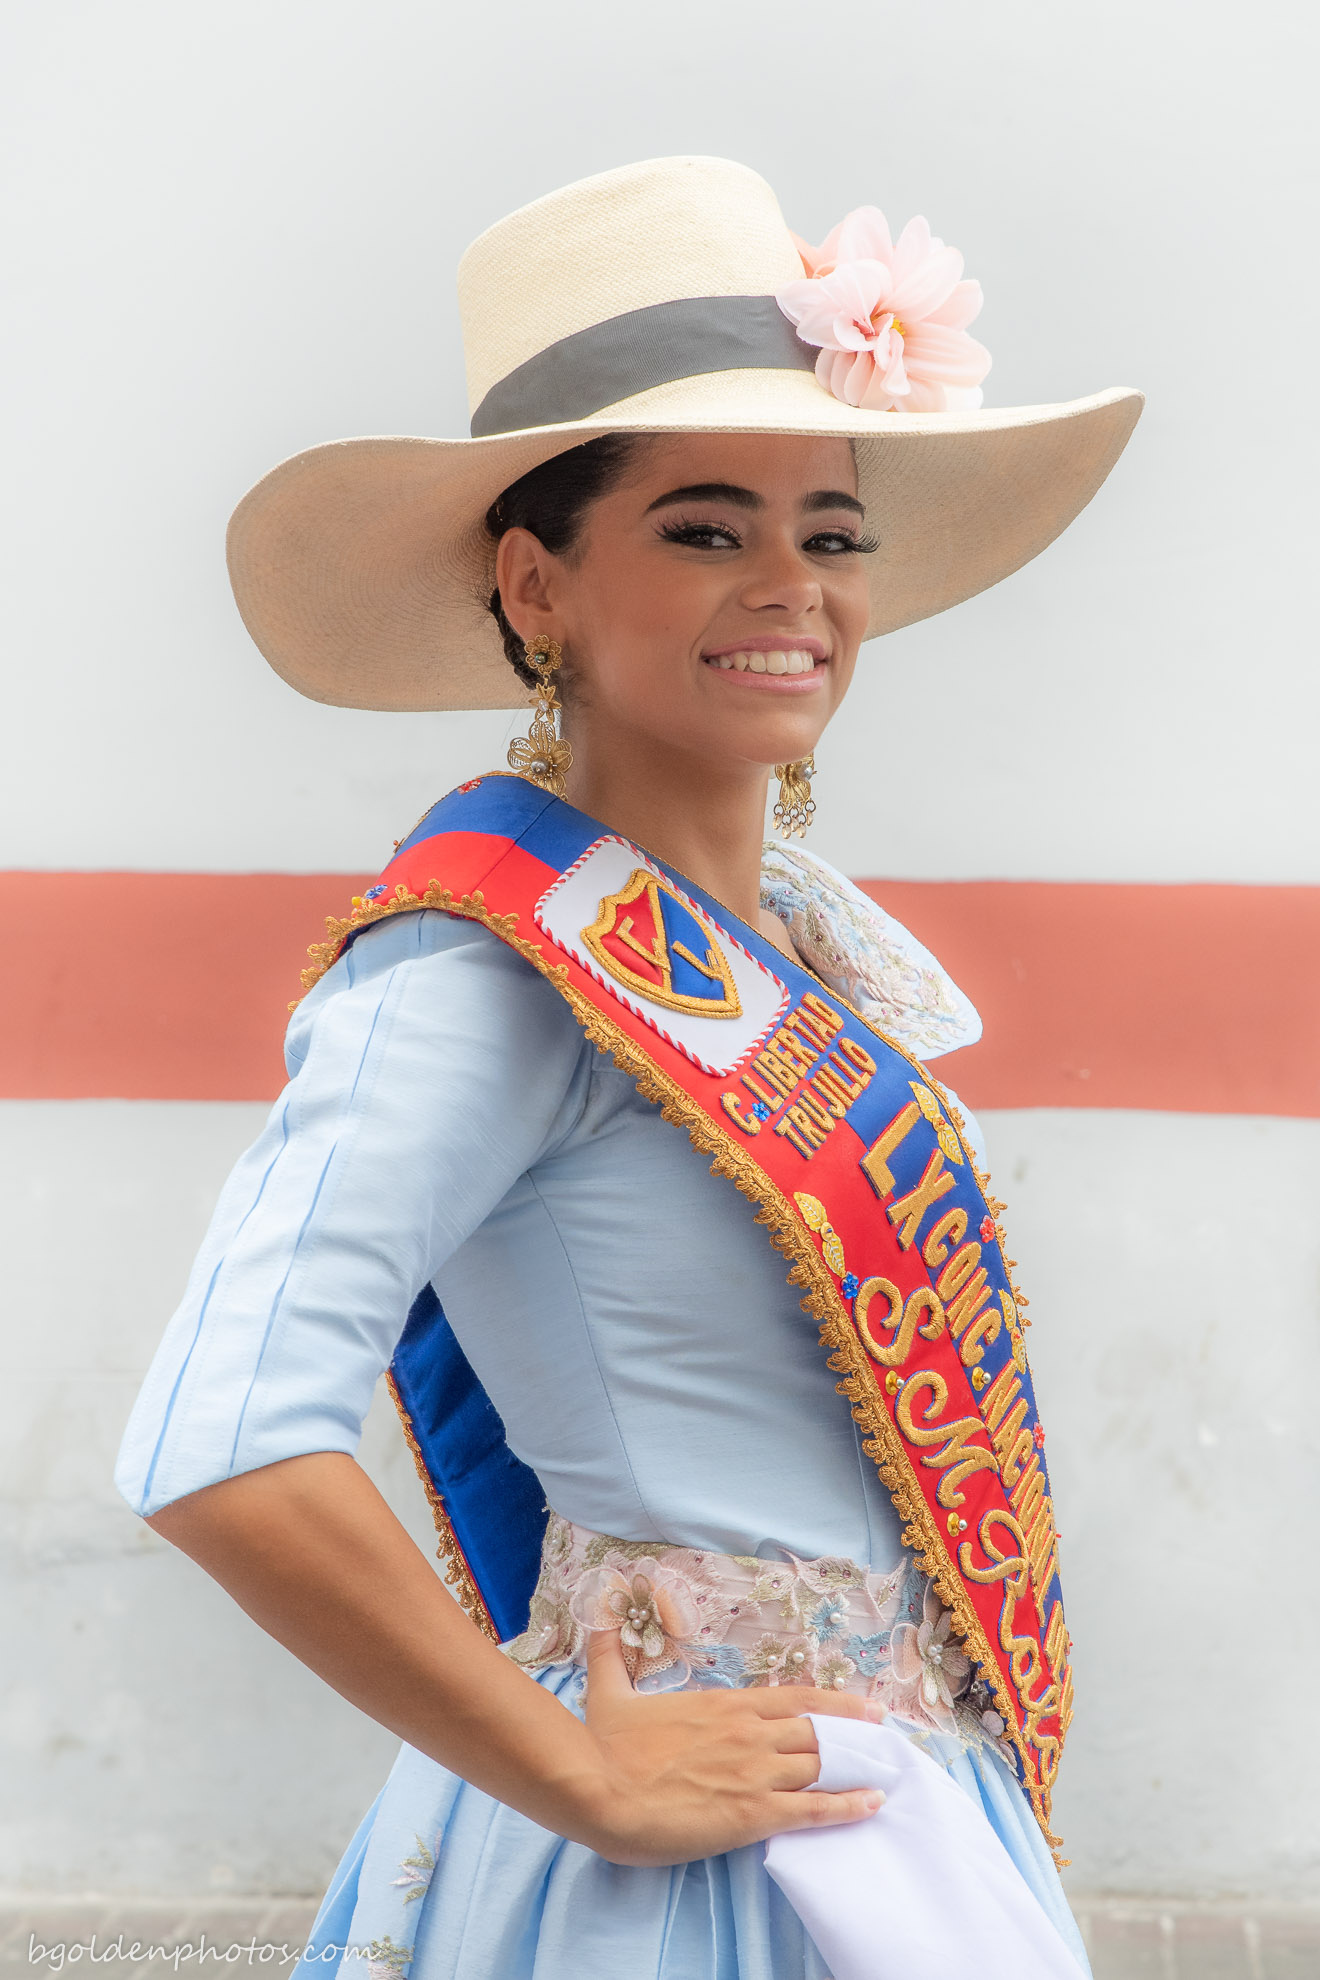 Rafaella Salmón Burmester - The Queen of the Marinera Festival in Trujillo Peru